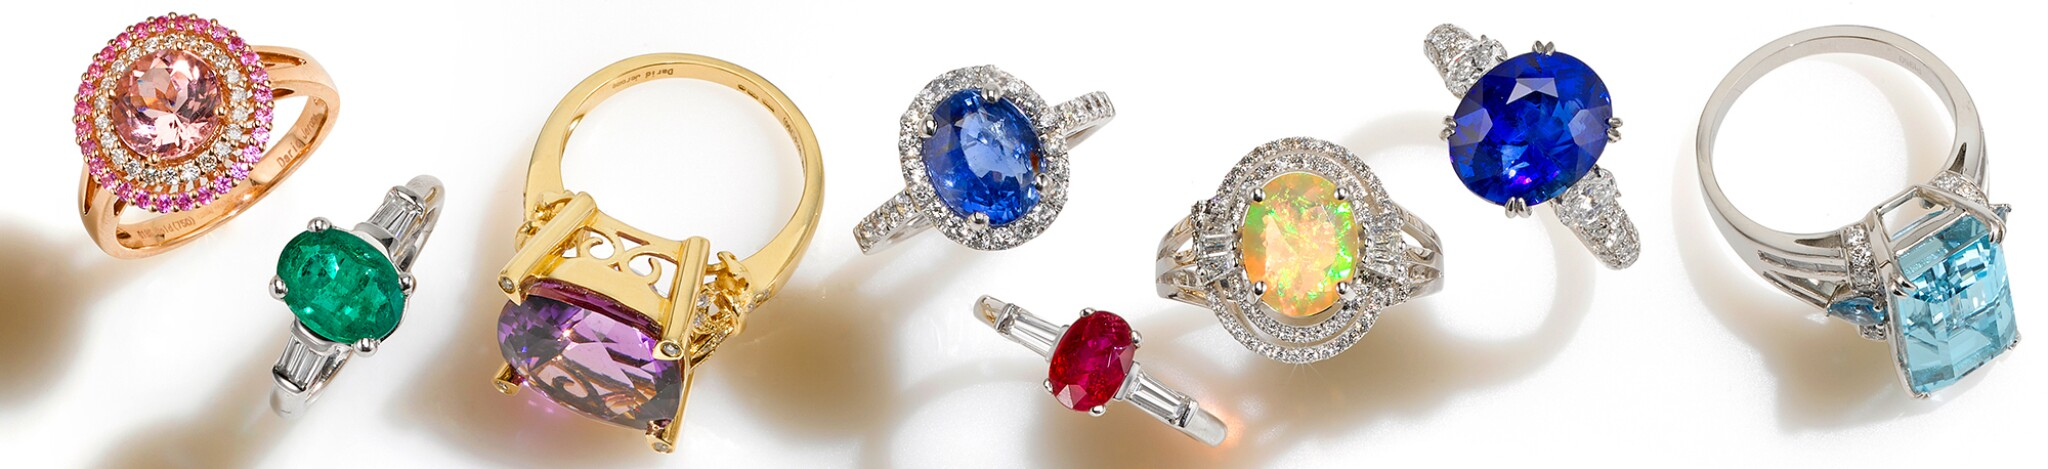 Jewels Online: The Spring Gem Edit